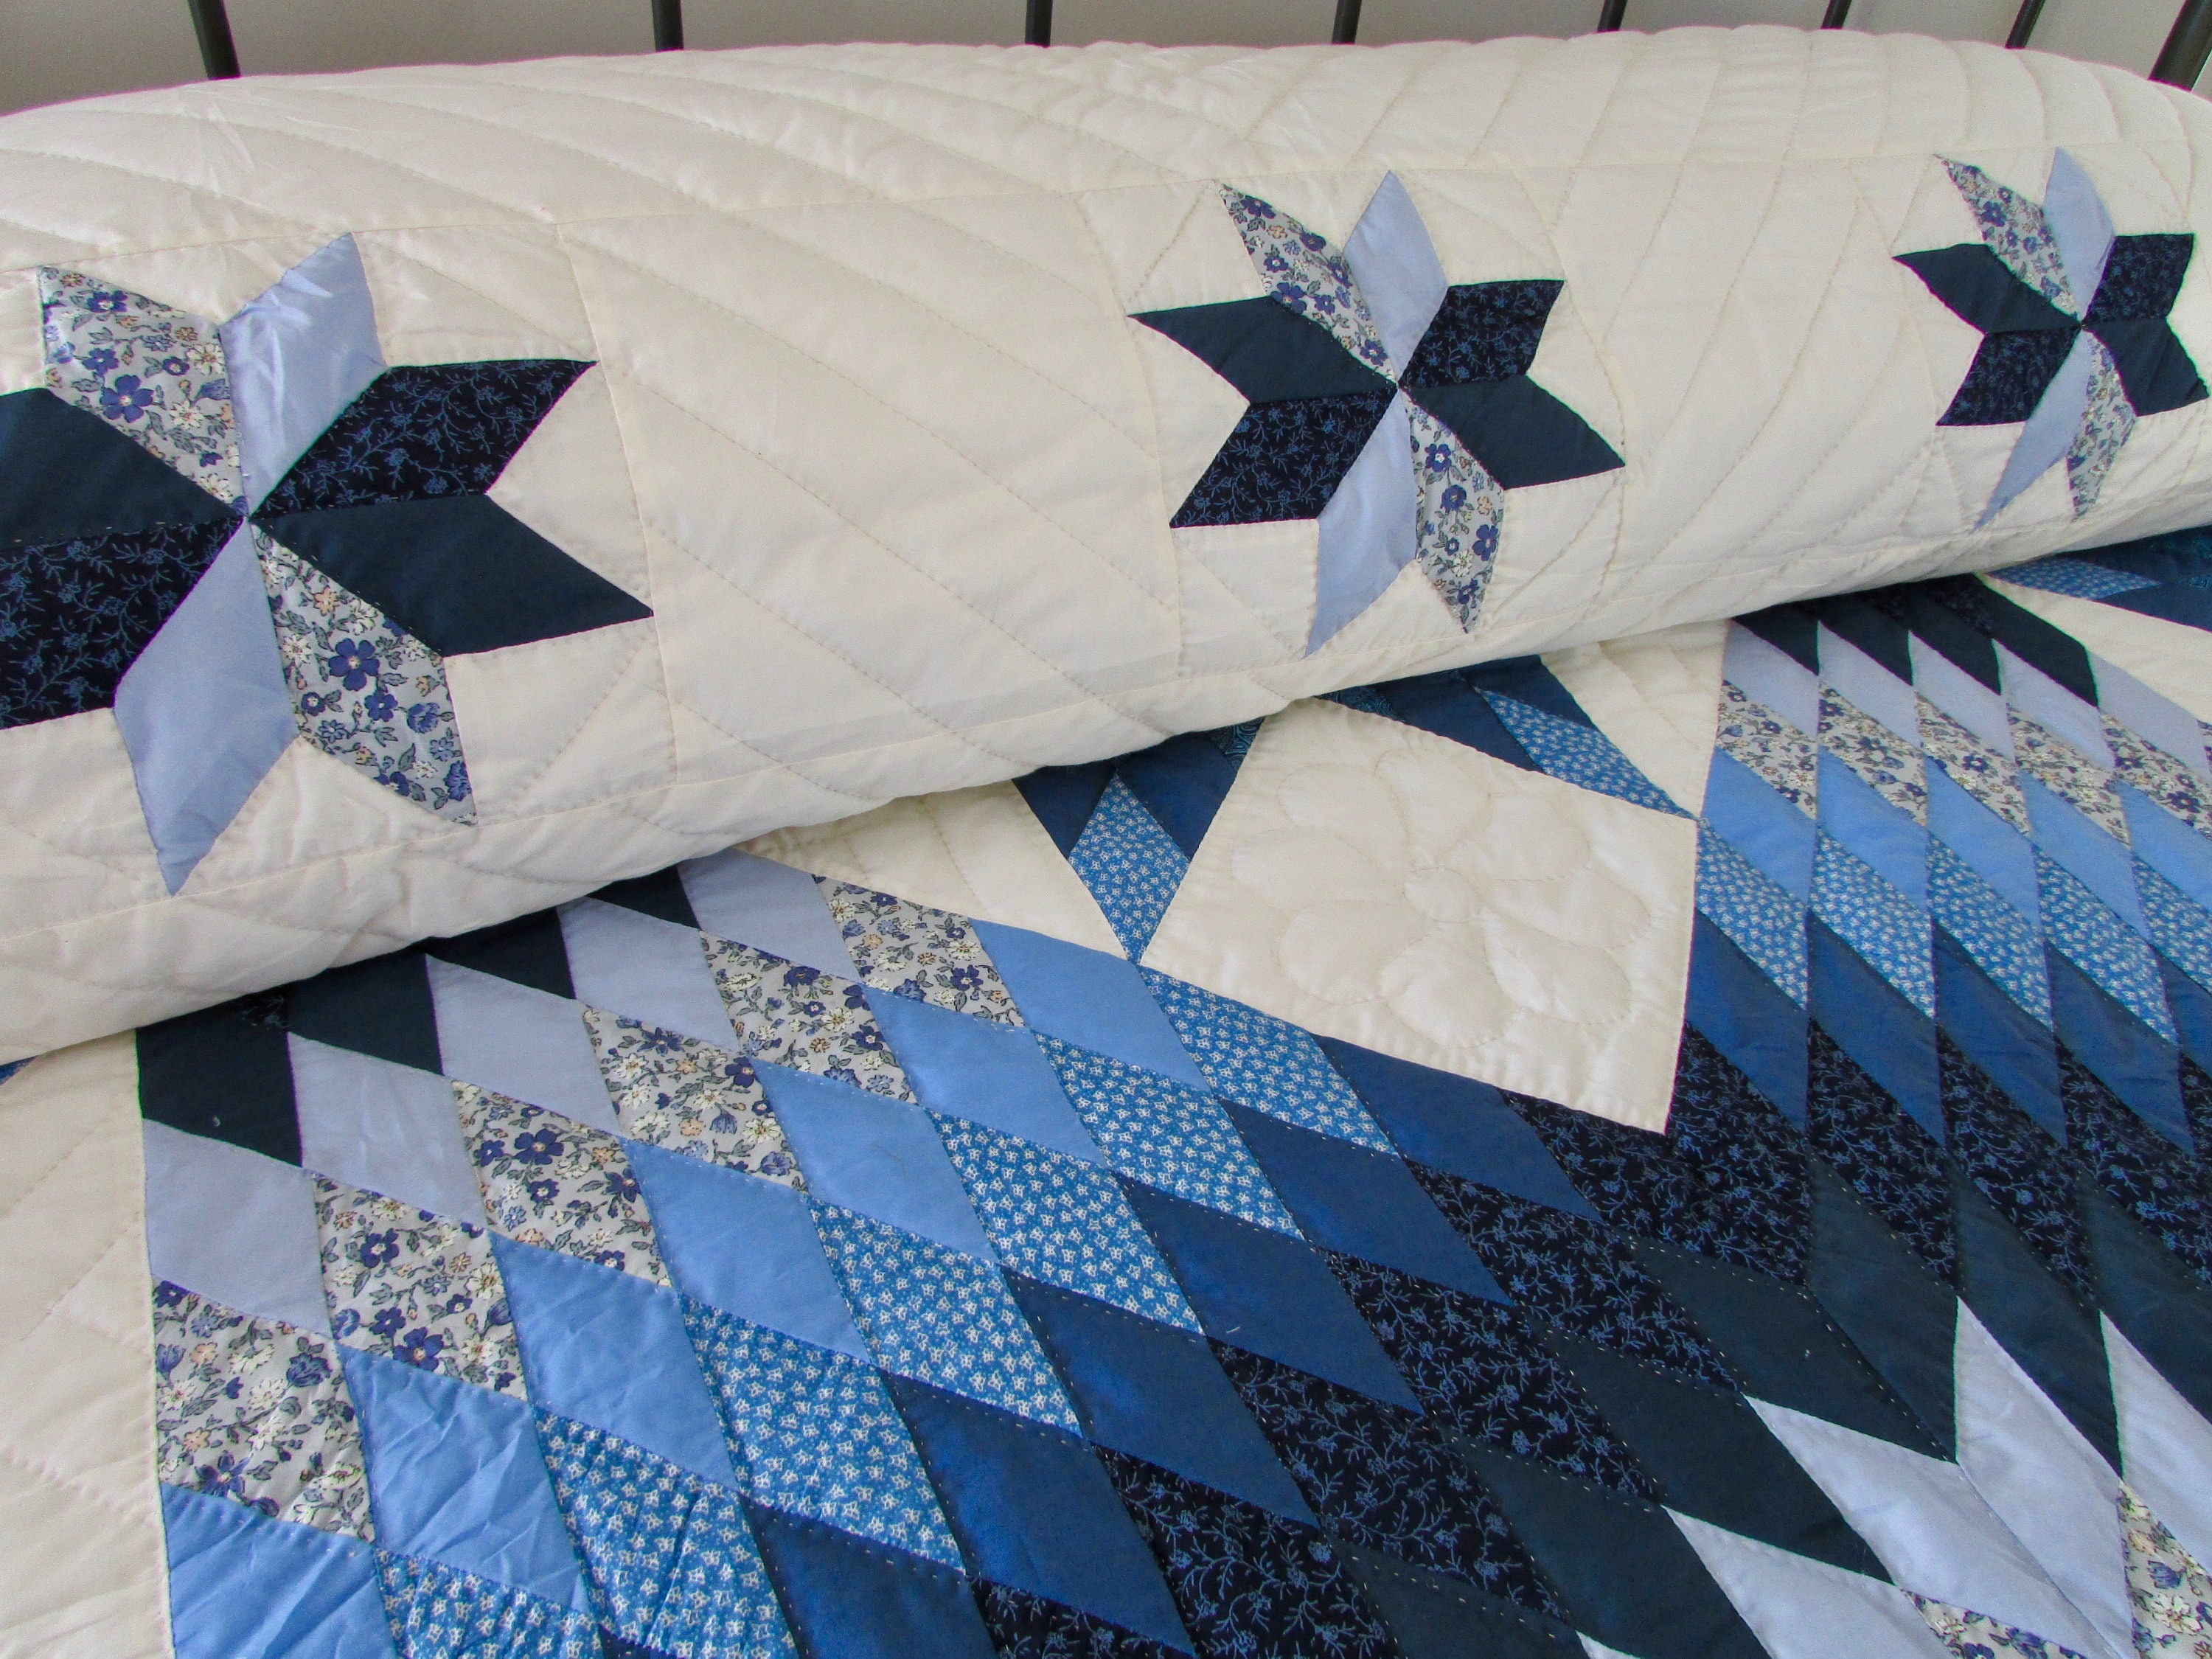 Star in Stars Quilt, Patchwork Quilt, Amish Quilt, Star Quilt, King Quilt, Blue Quilt, Country Quilt, Hand Made Quilt, Quilted Bedspread